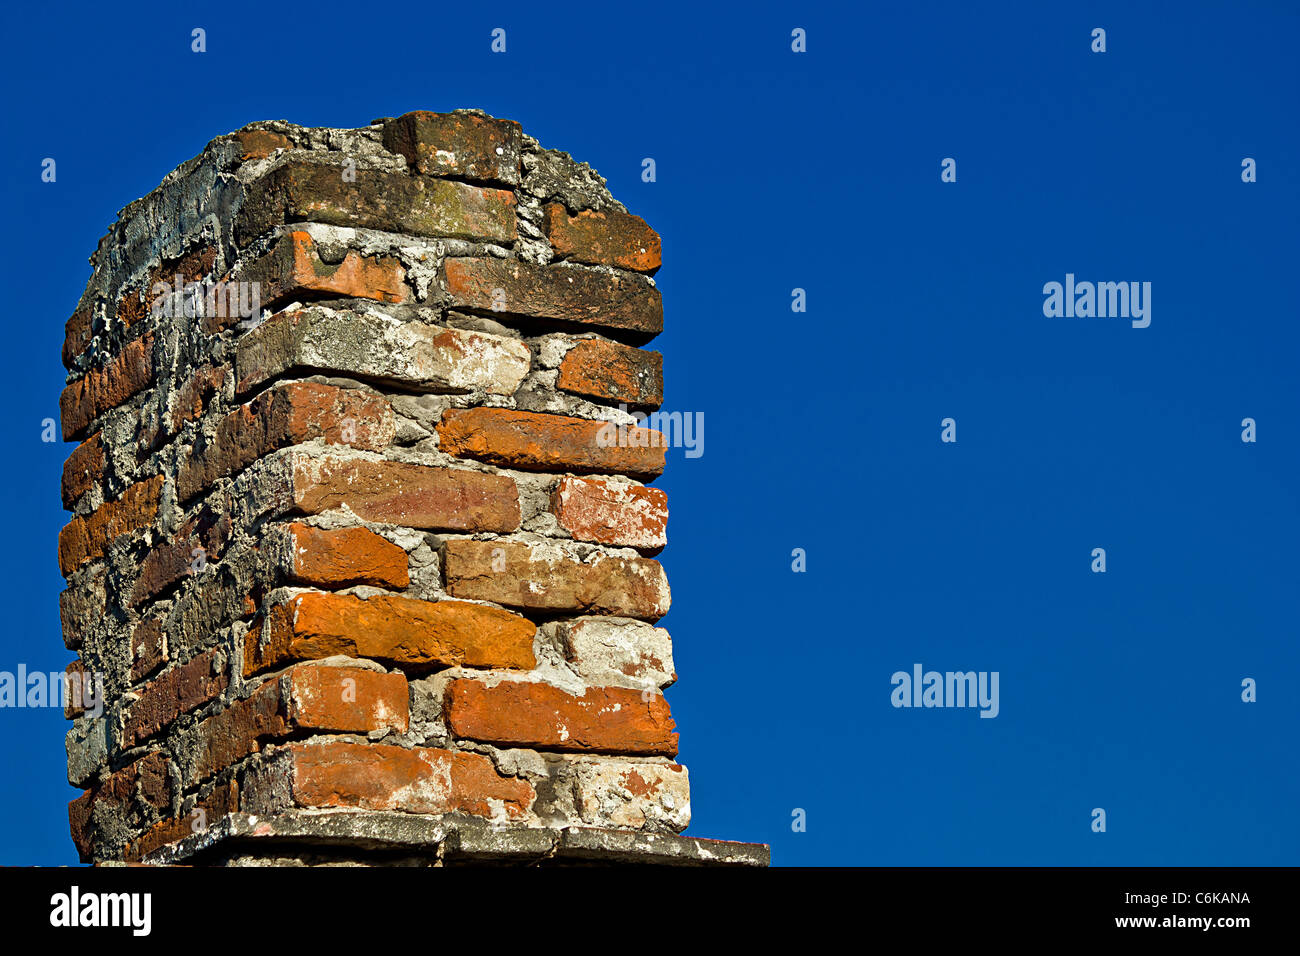 An Old Brick Chimney Stock Photos & An Old Brick Chimney Stock ...